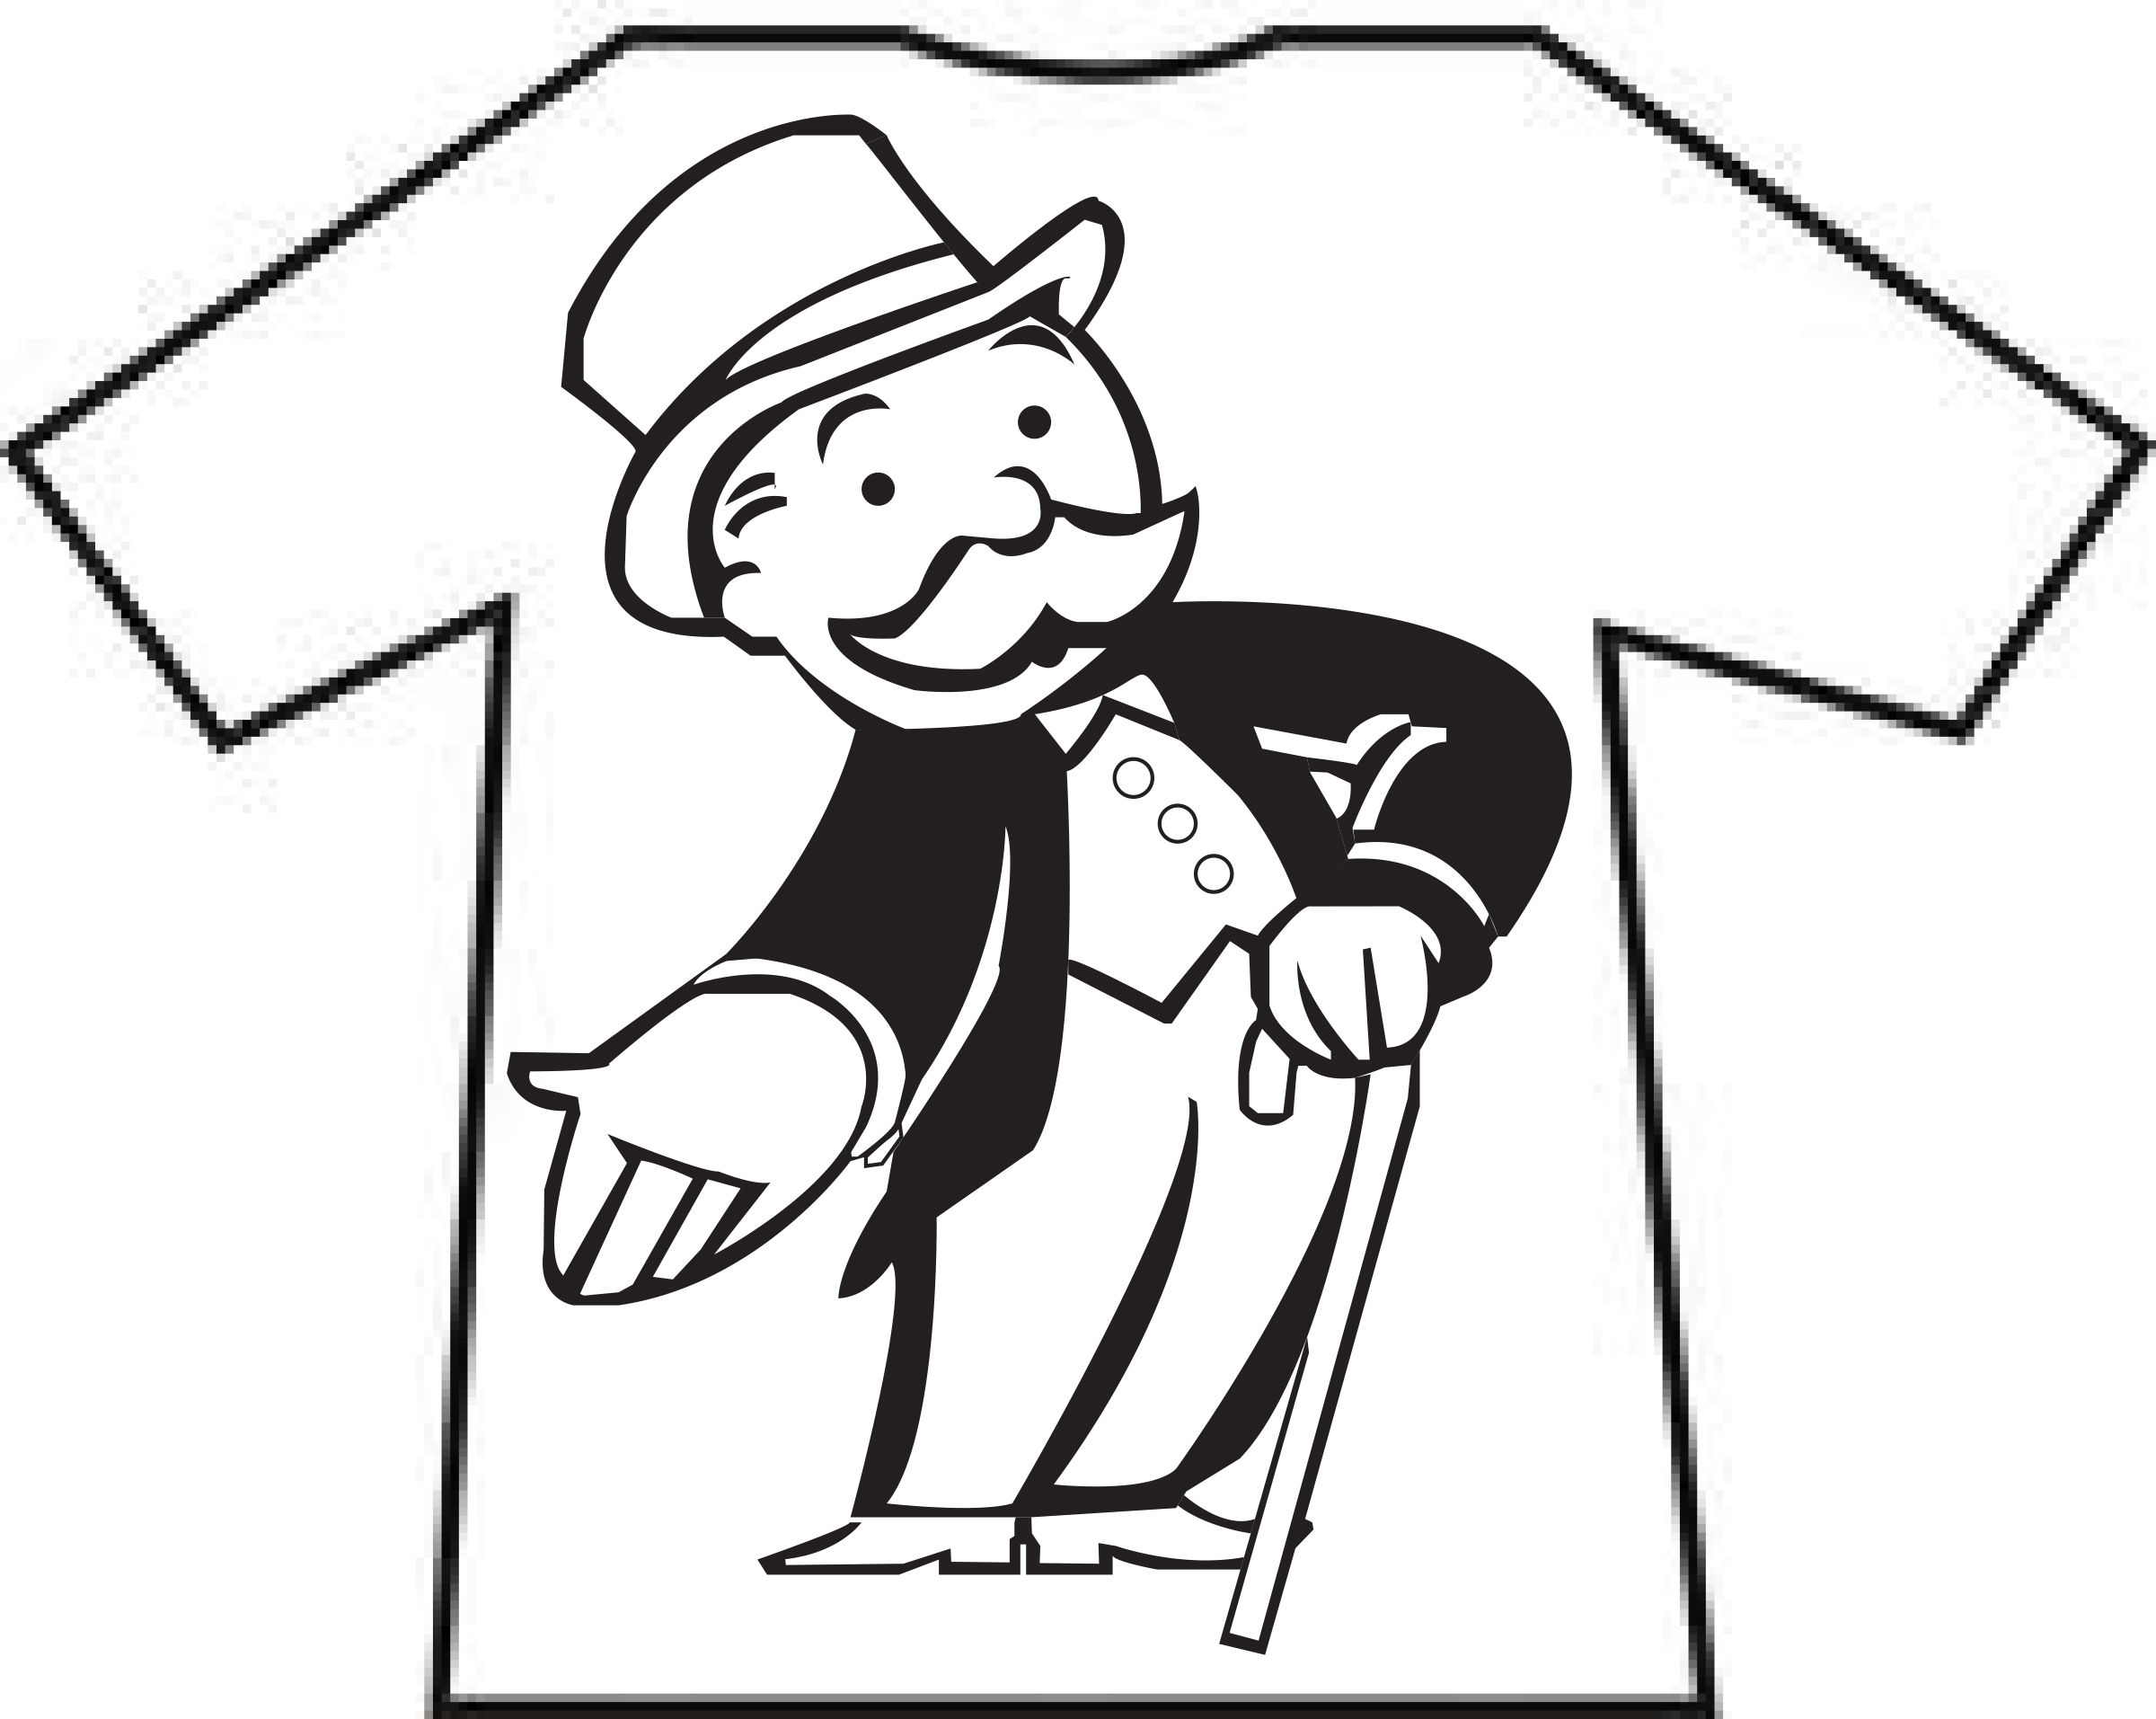 Monopoly Man Coloring Pages